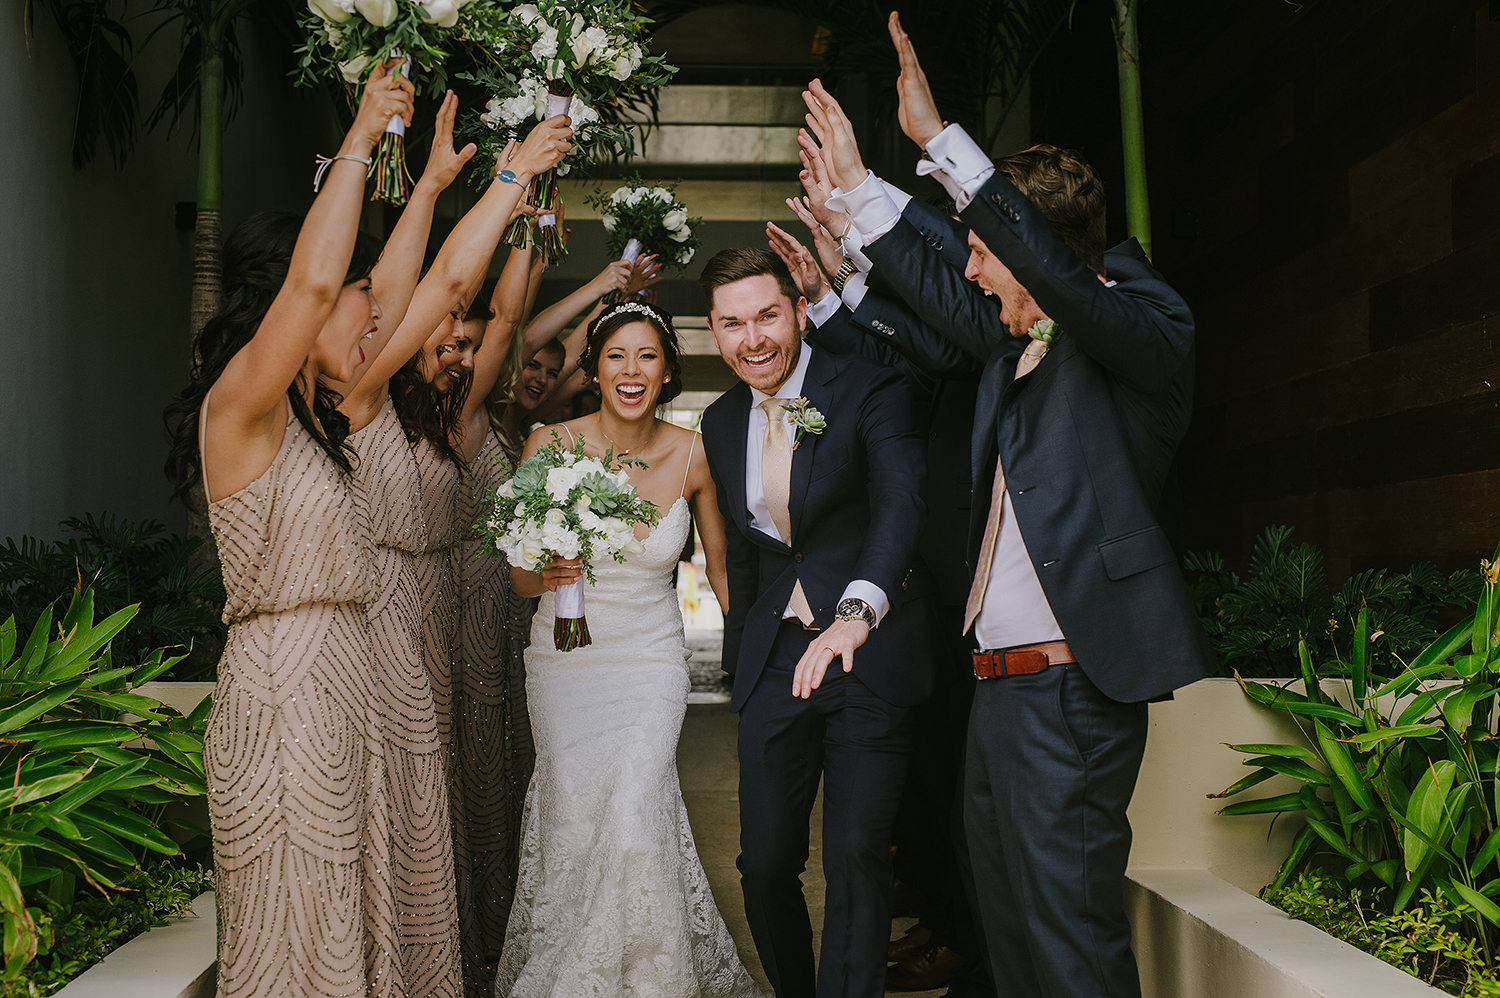 CherylReed_Wedding_Kape_Photography_WeddingPhotography_Mexico_Boda_Fotografia_Royalton_Hideway_Cancun_RivieraMaya_PlayadelCarmen_Beach_342FB_BLOG.jpg